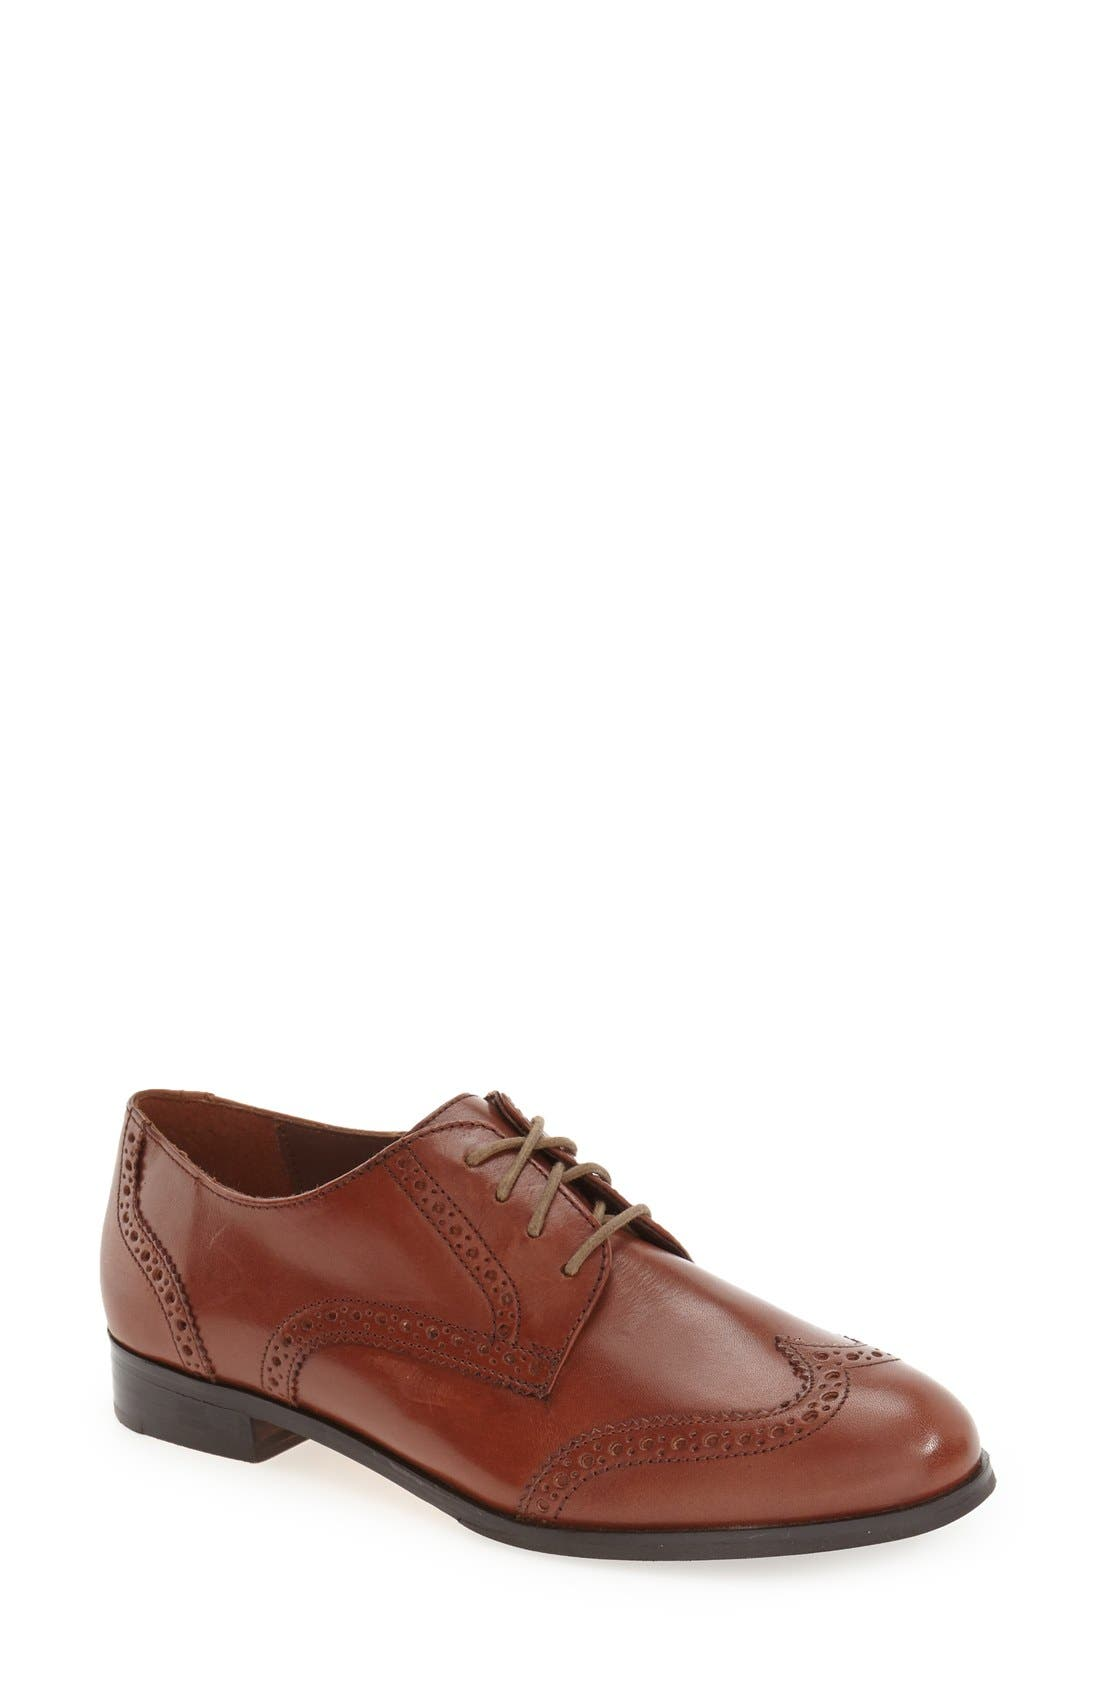 Main Image - Cole Haan Grand.OS Oxford (Women)